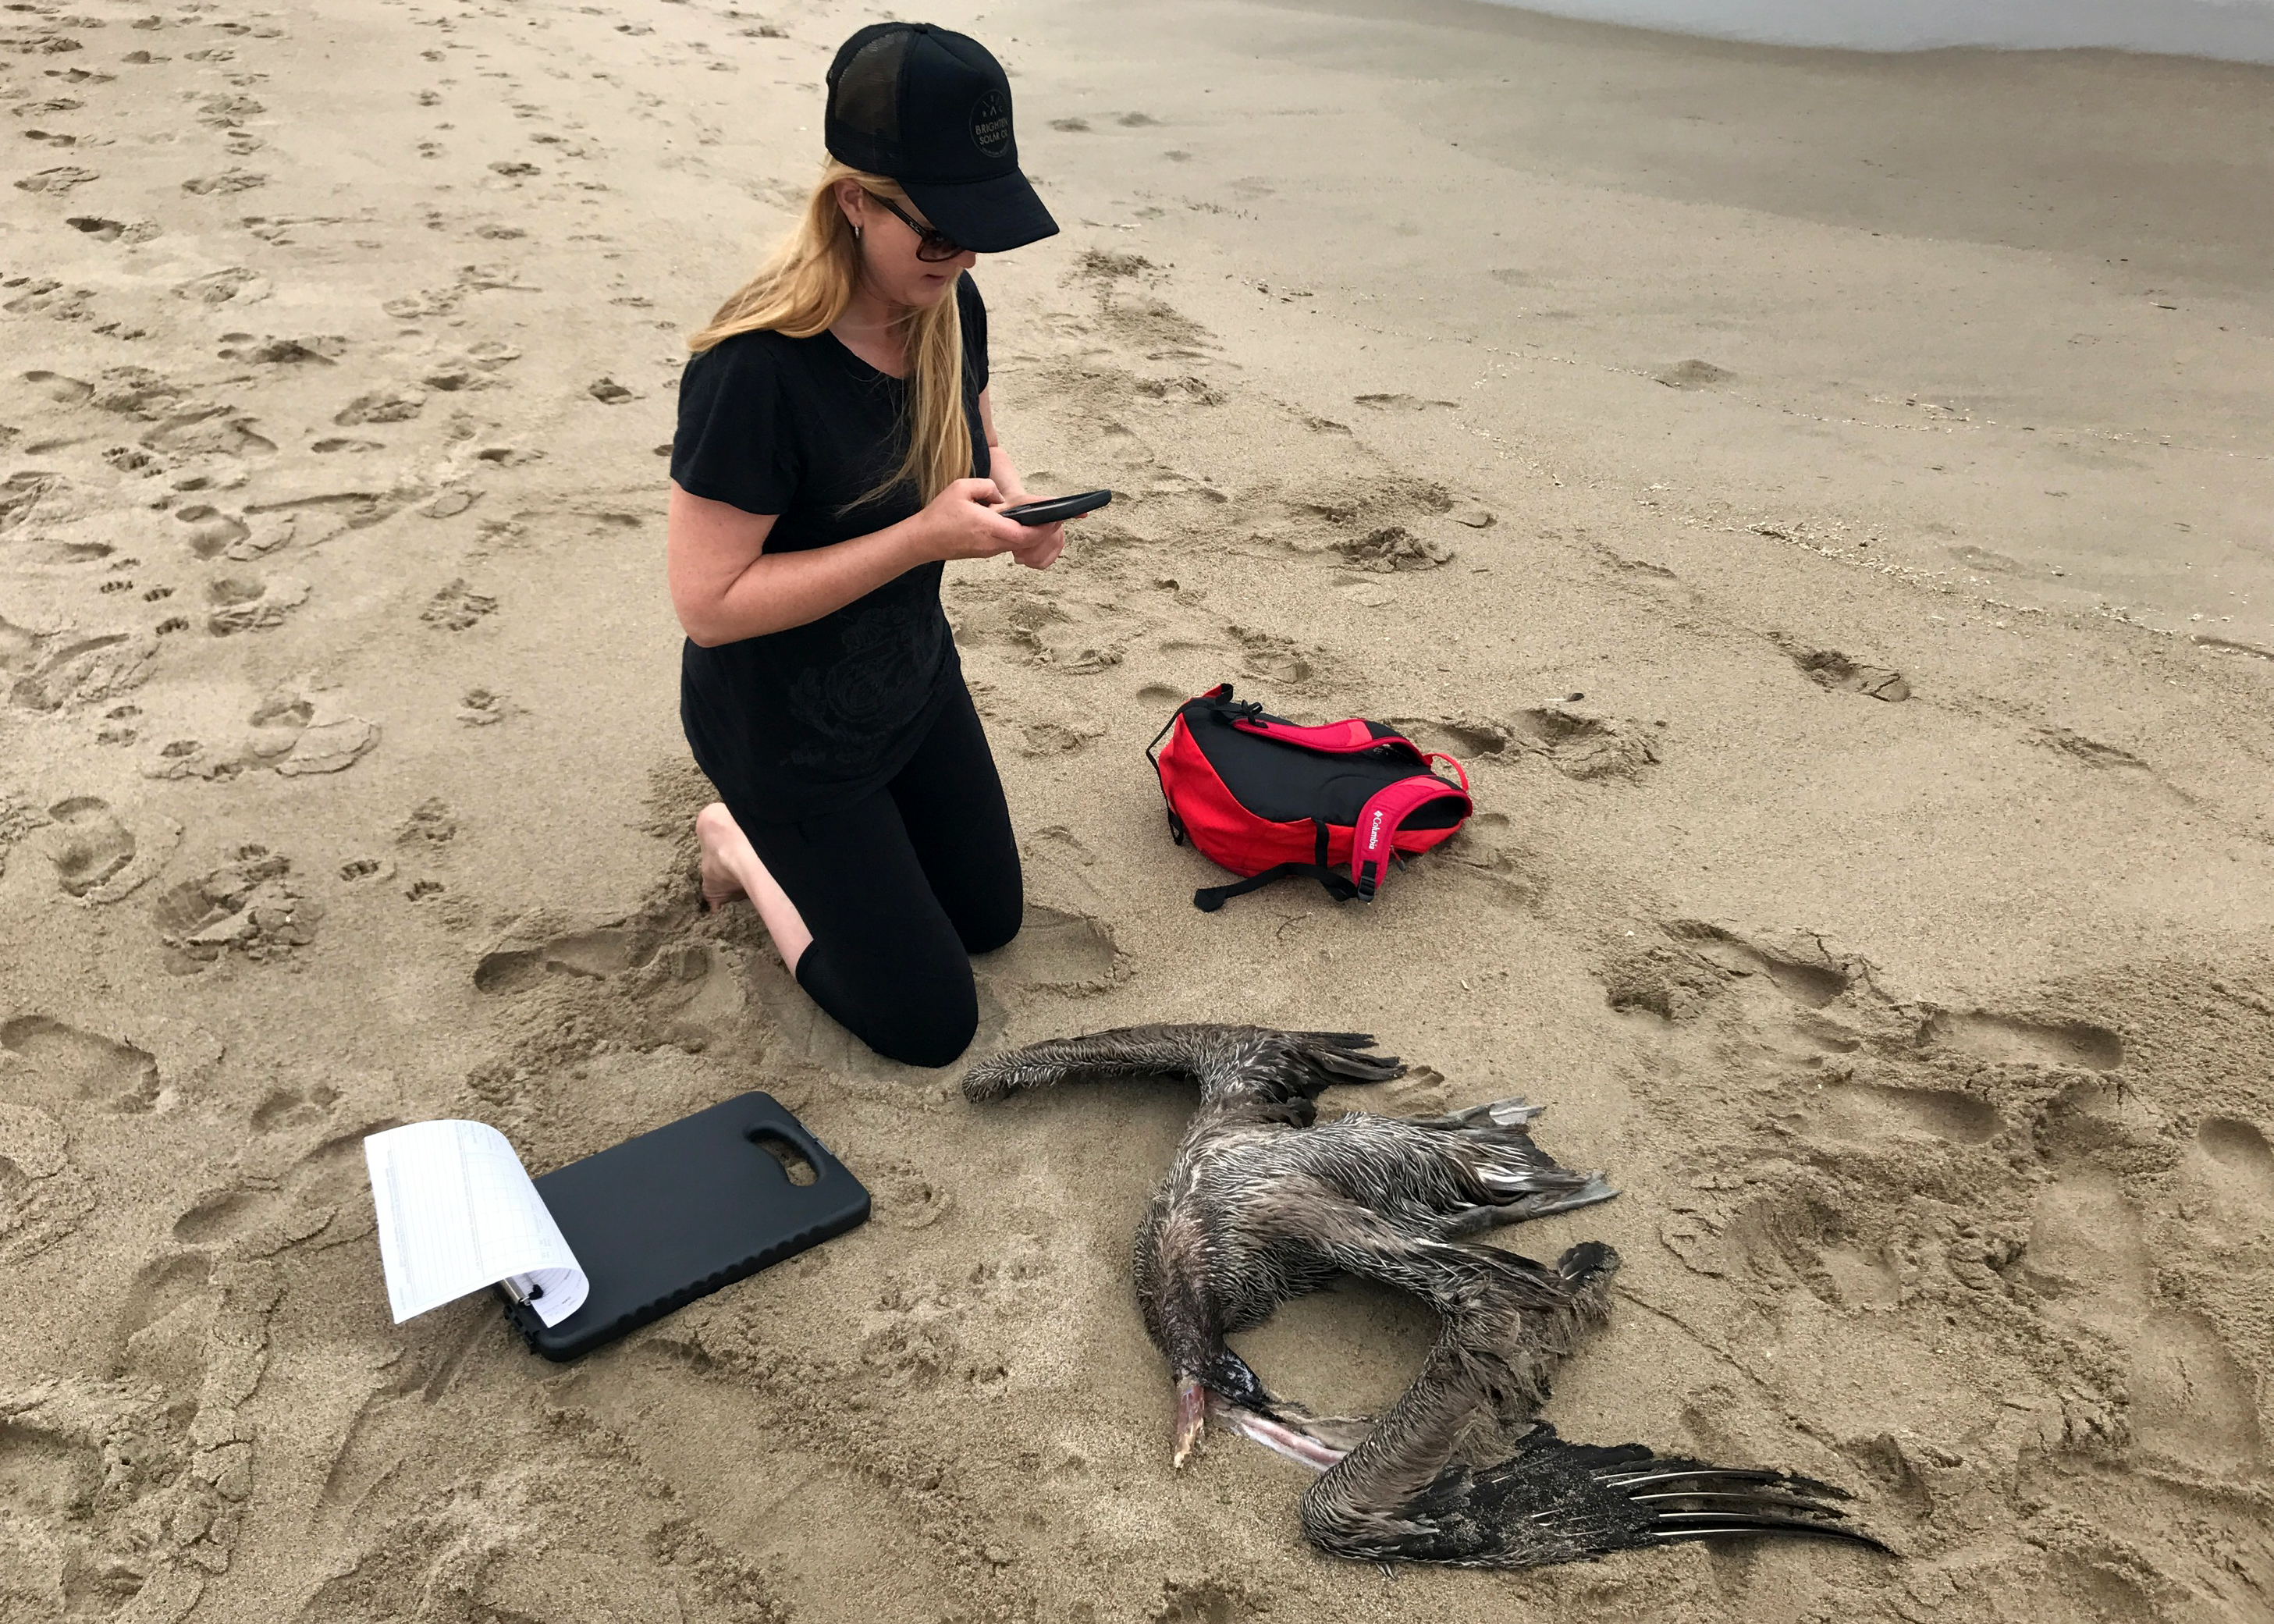 Andrea Dransfield, a BeachCOMBERS volunteer, examines a California brown pelican found on Silver Strand beach during her monthly survey.